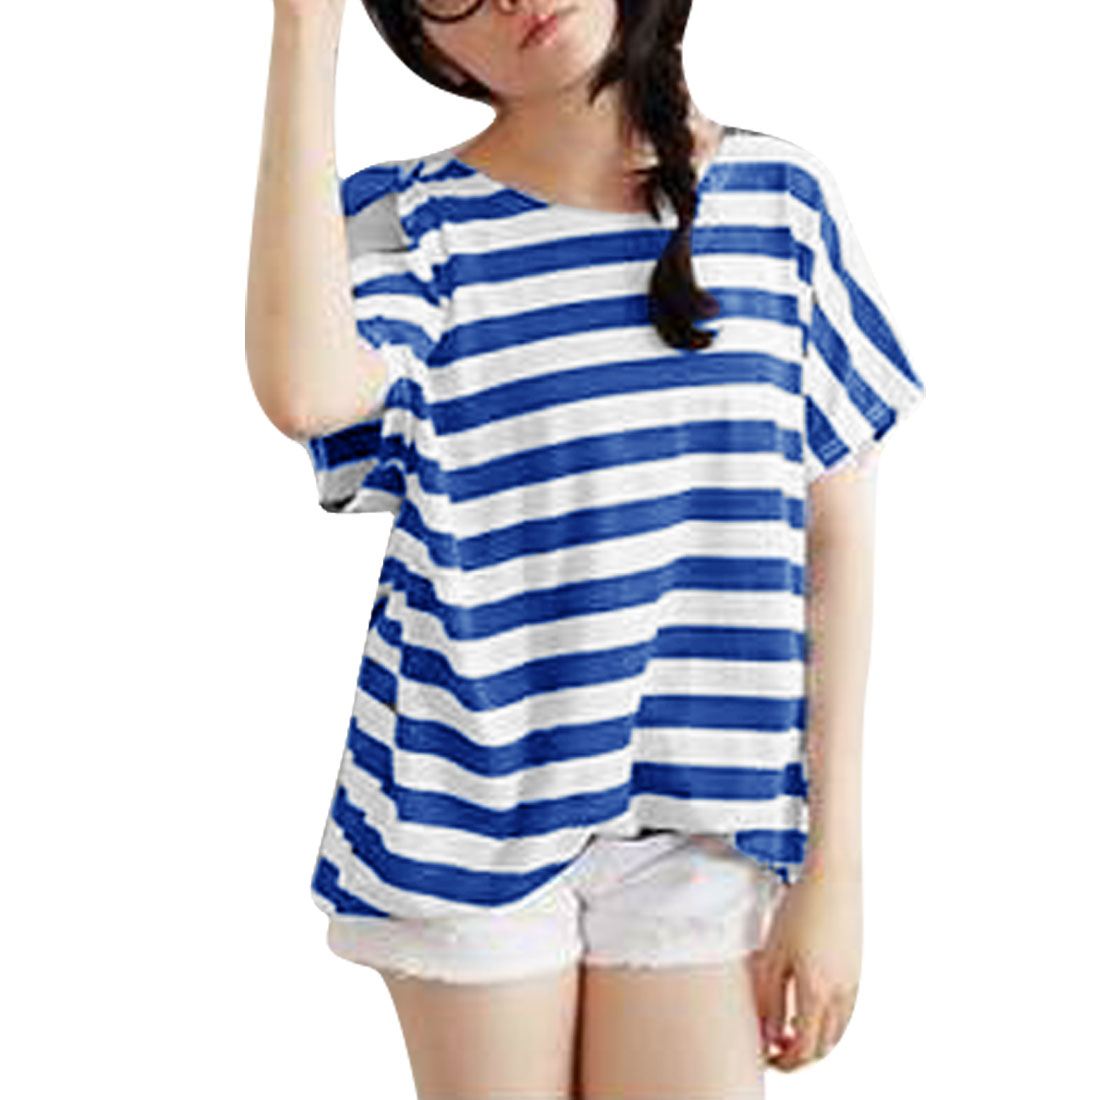 Women Korea Fashion Short Dolman Sleeve Stripes Prints Royalblue White Top M